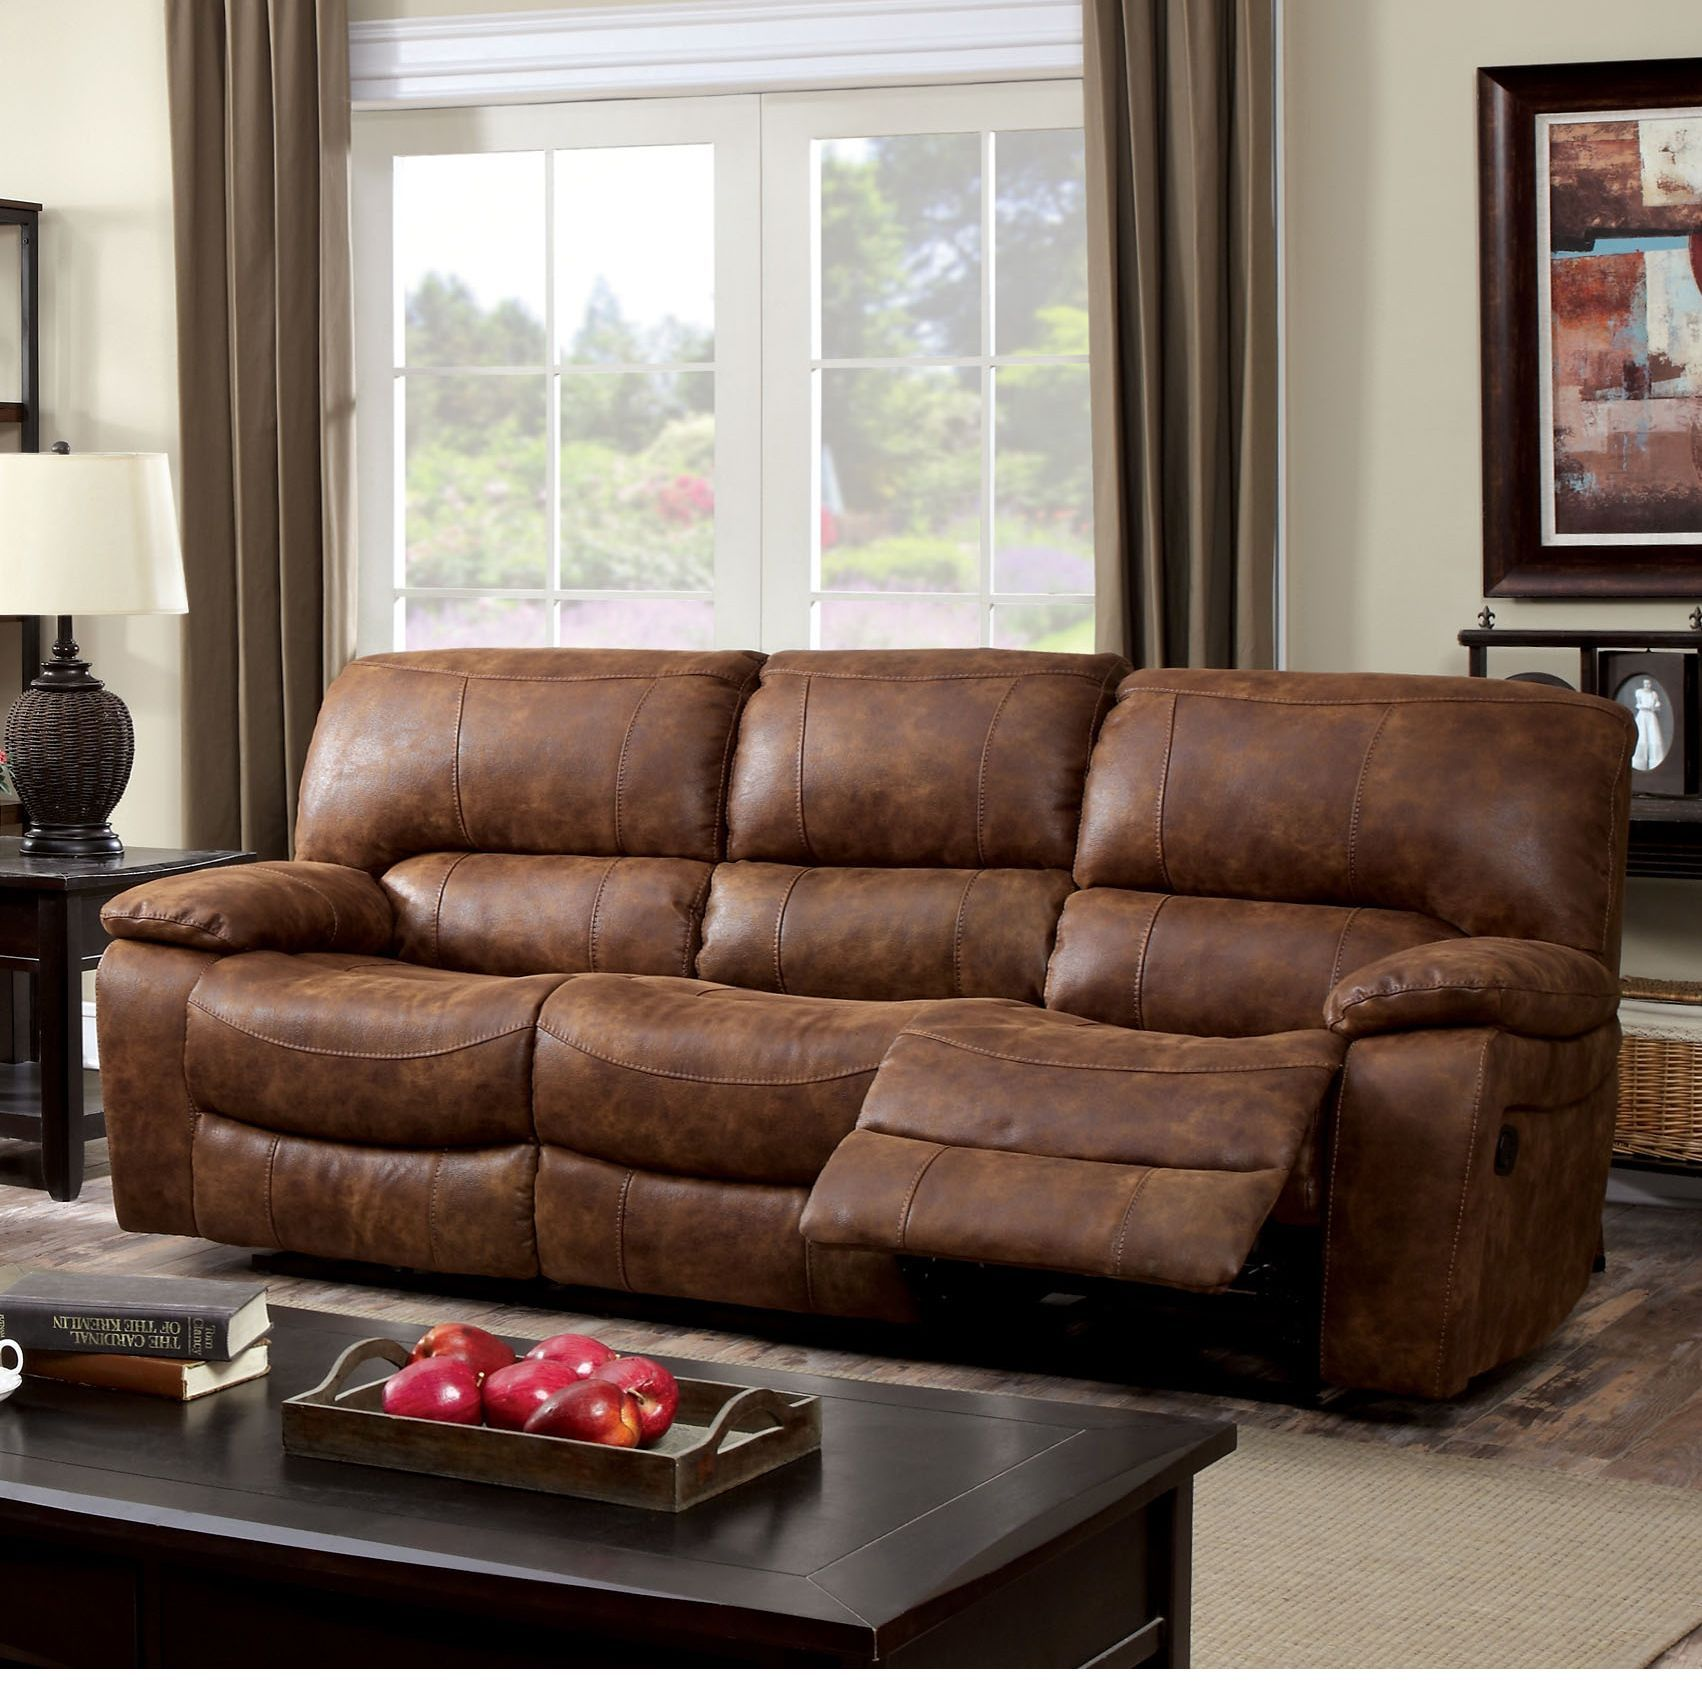 Furniture of America Cameltone Brown Bonded Leather Reclining Sofa